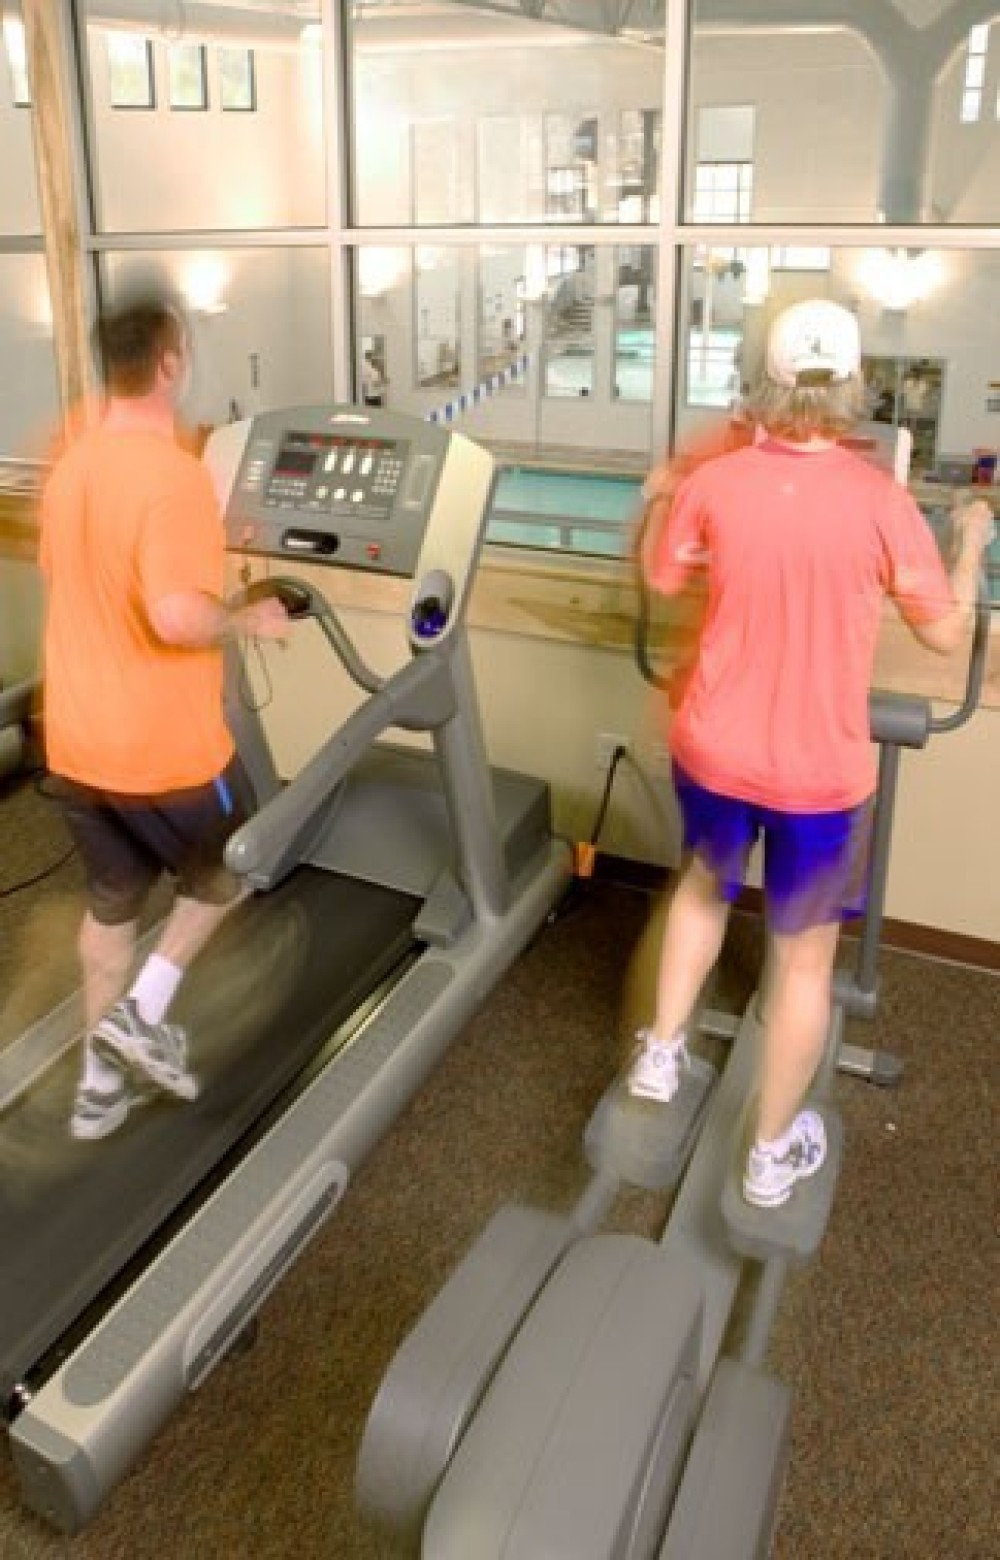 Cardio exercise – Living Images Photography